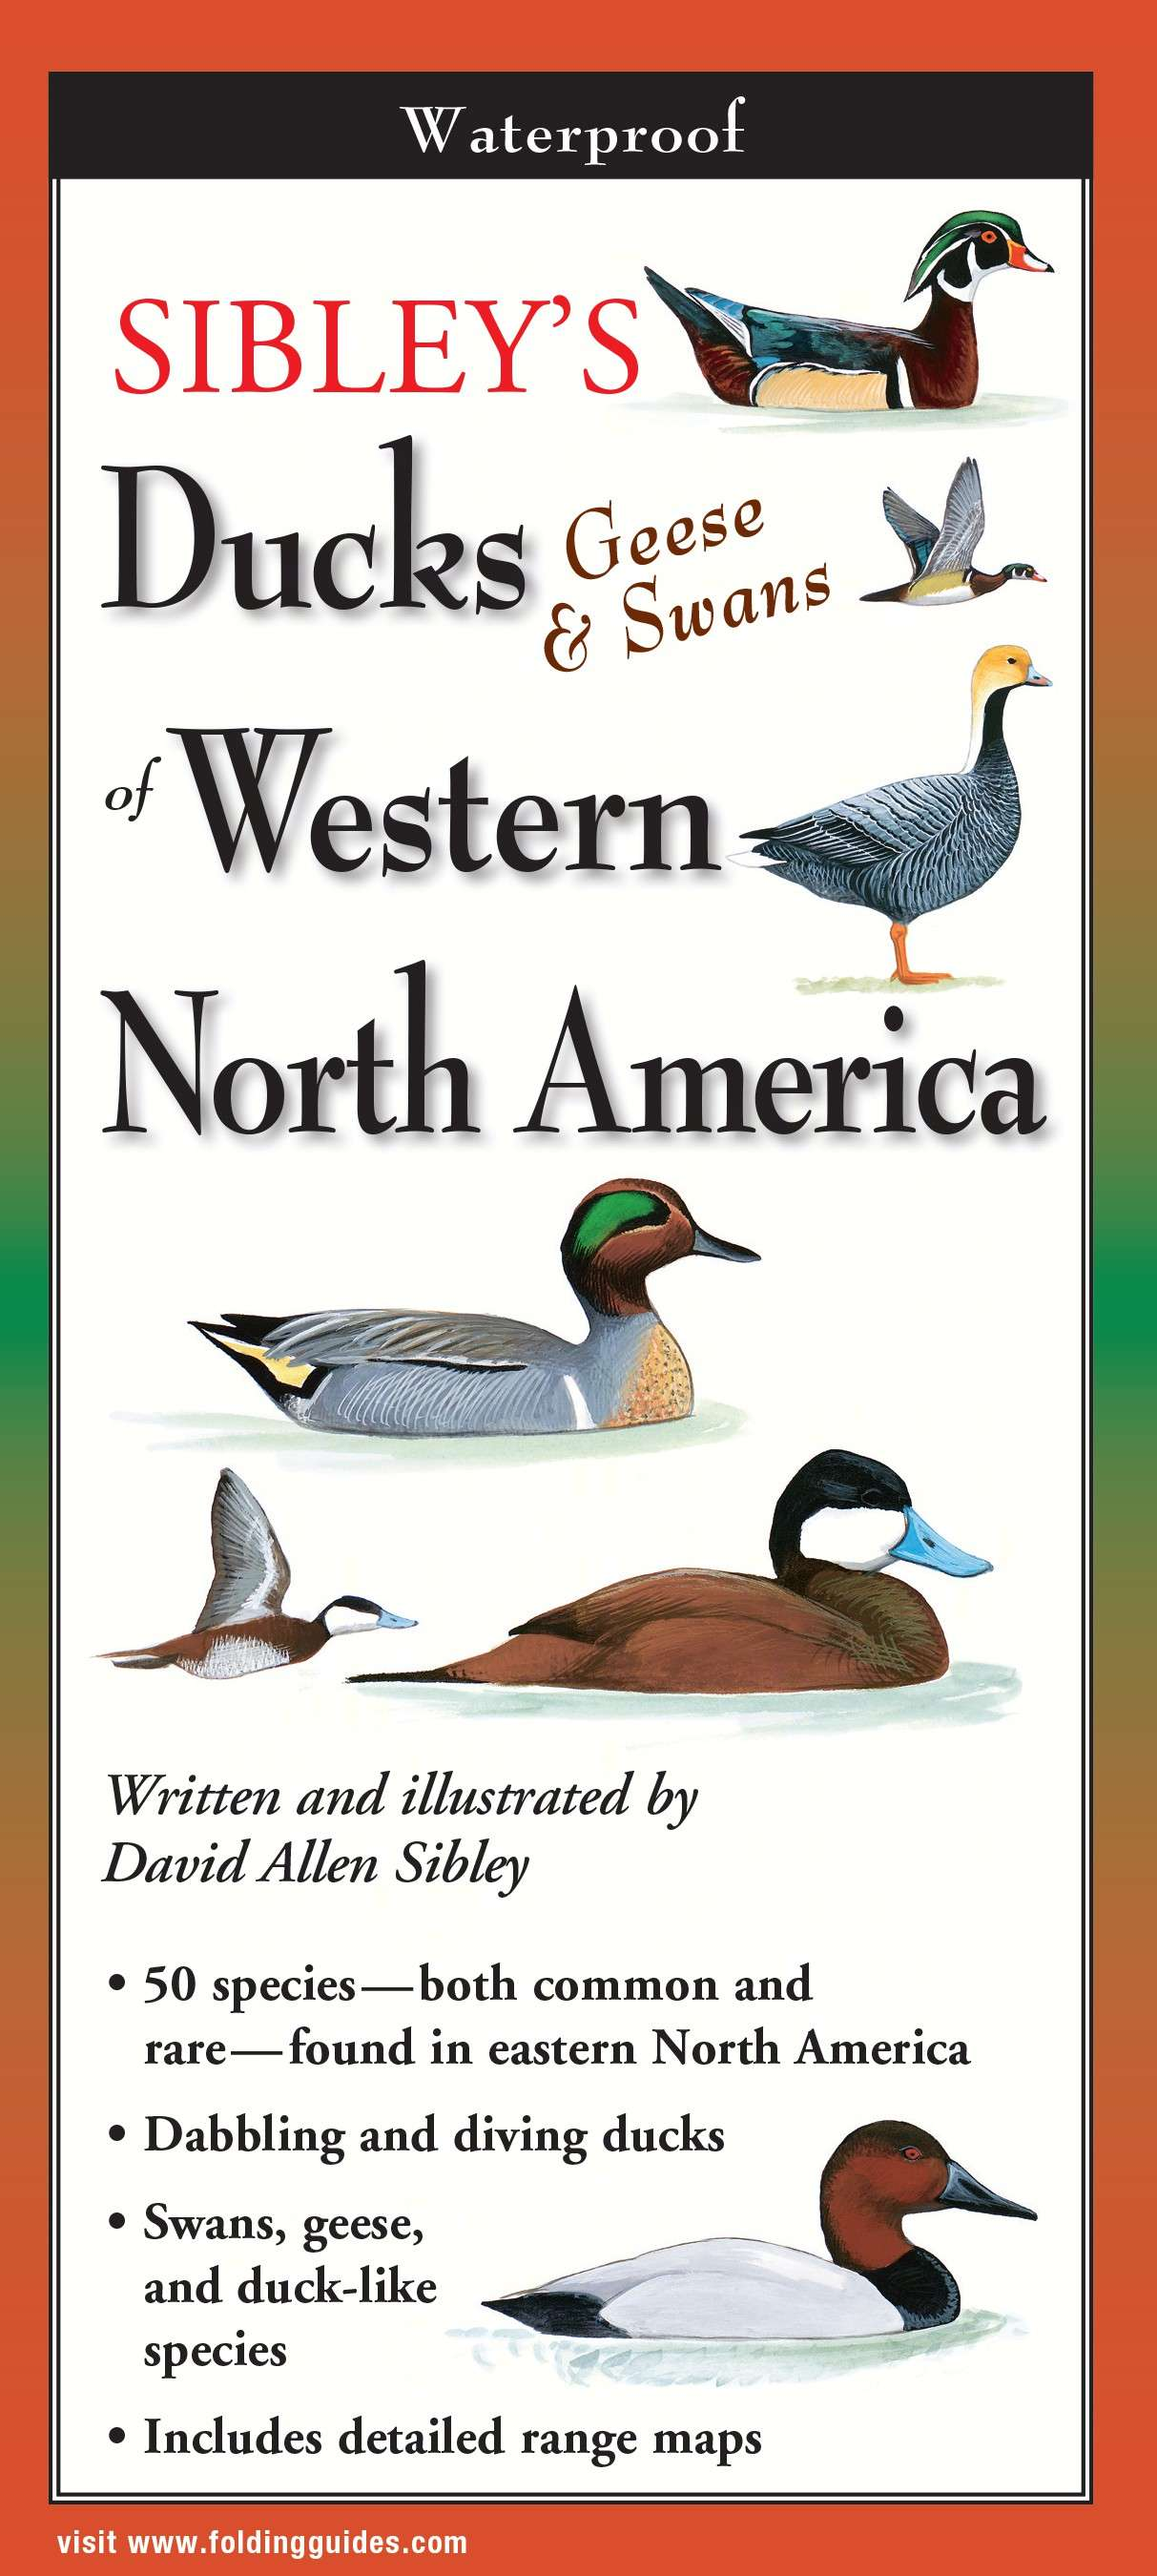 Sibley's Ducks, Geese,& Swans of Western N.A. - Quantity 1